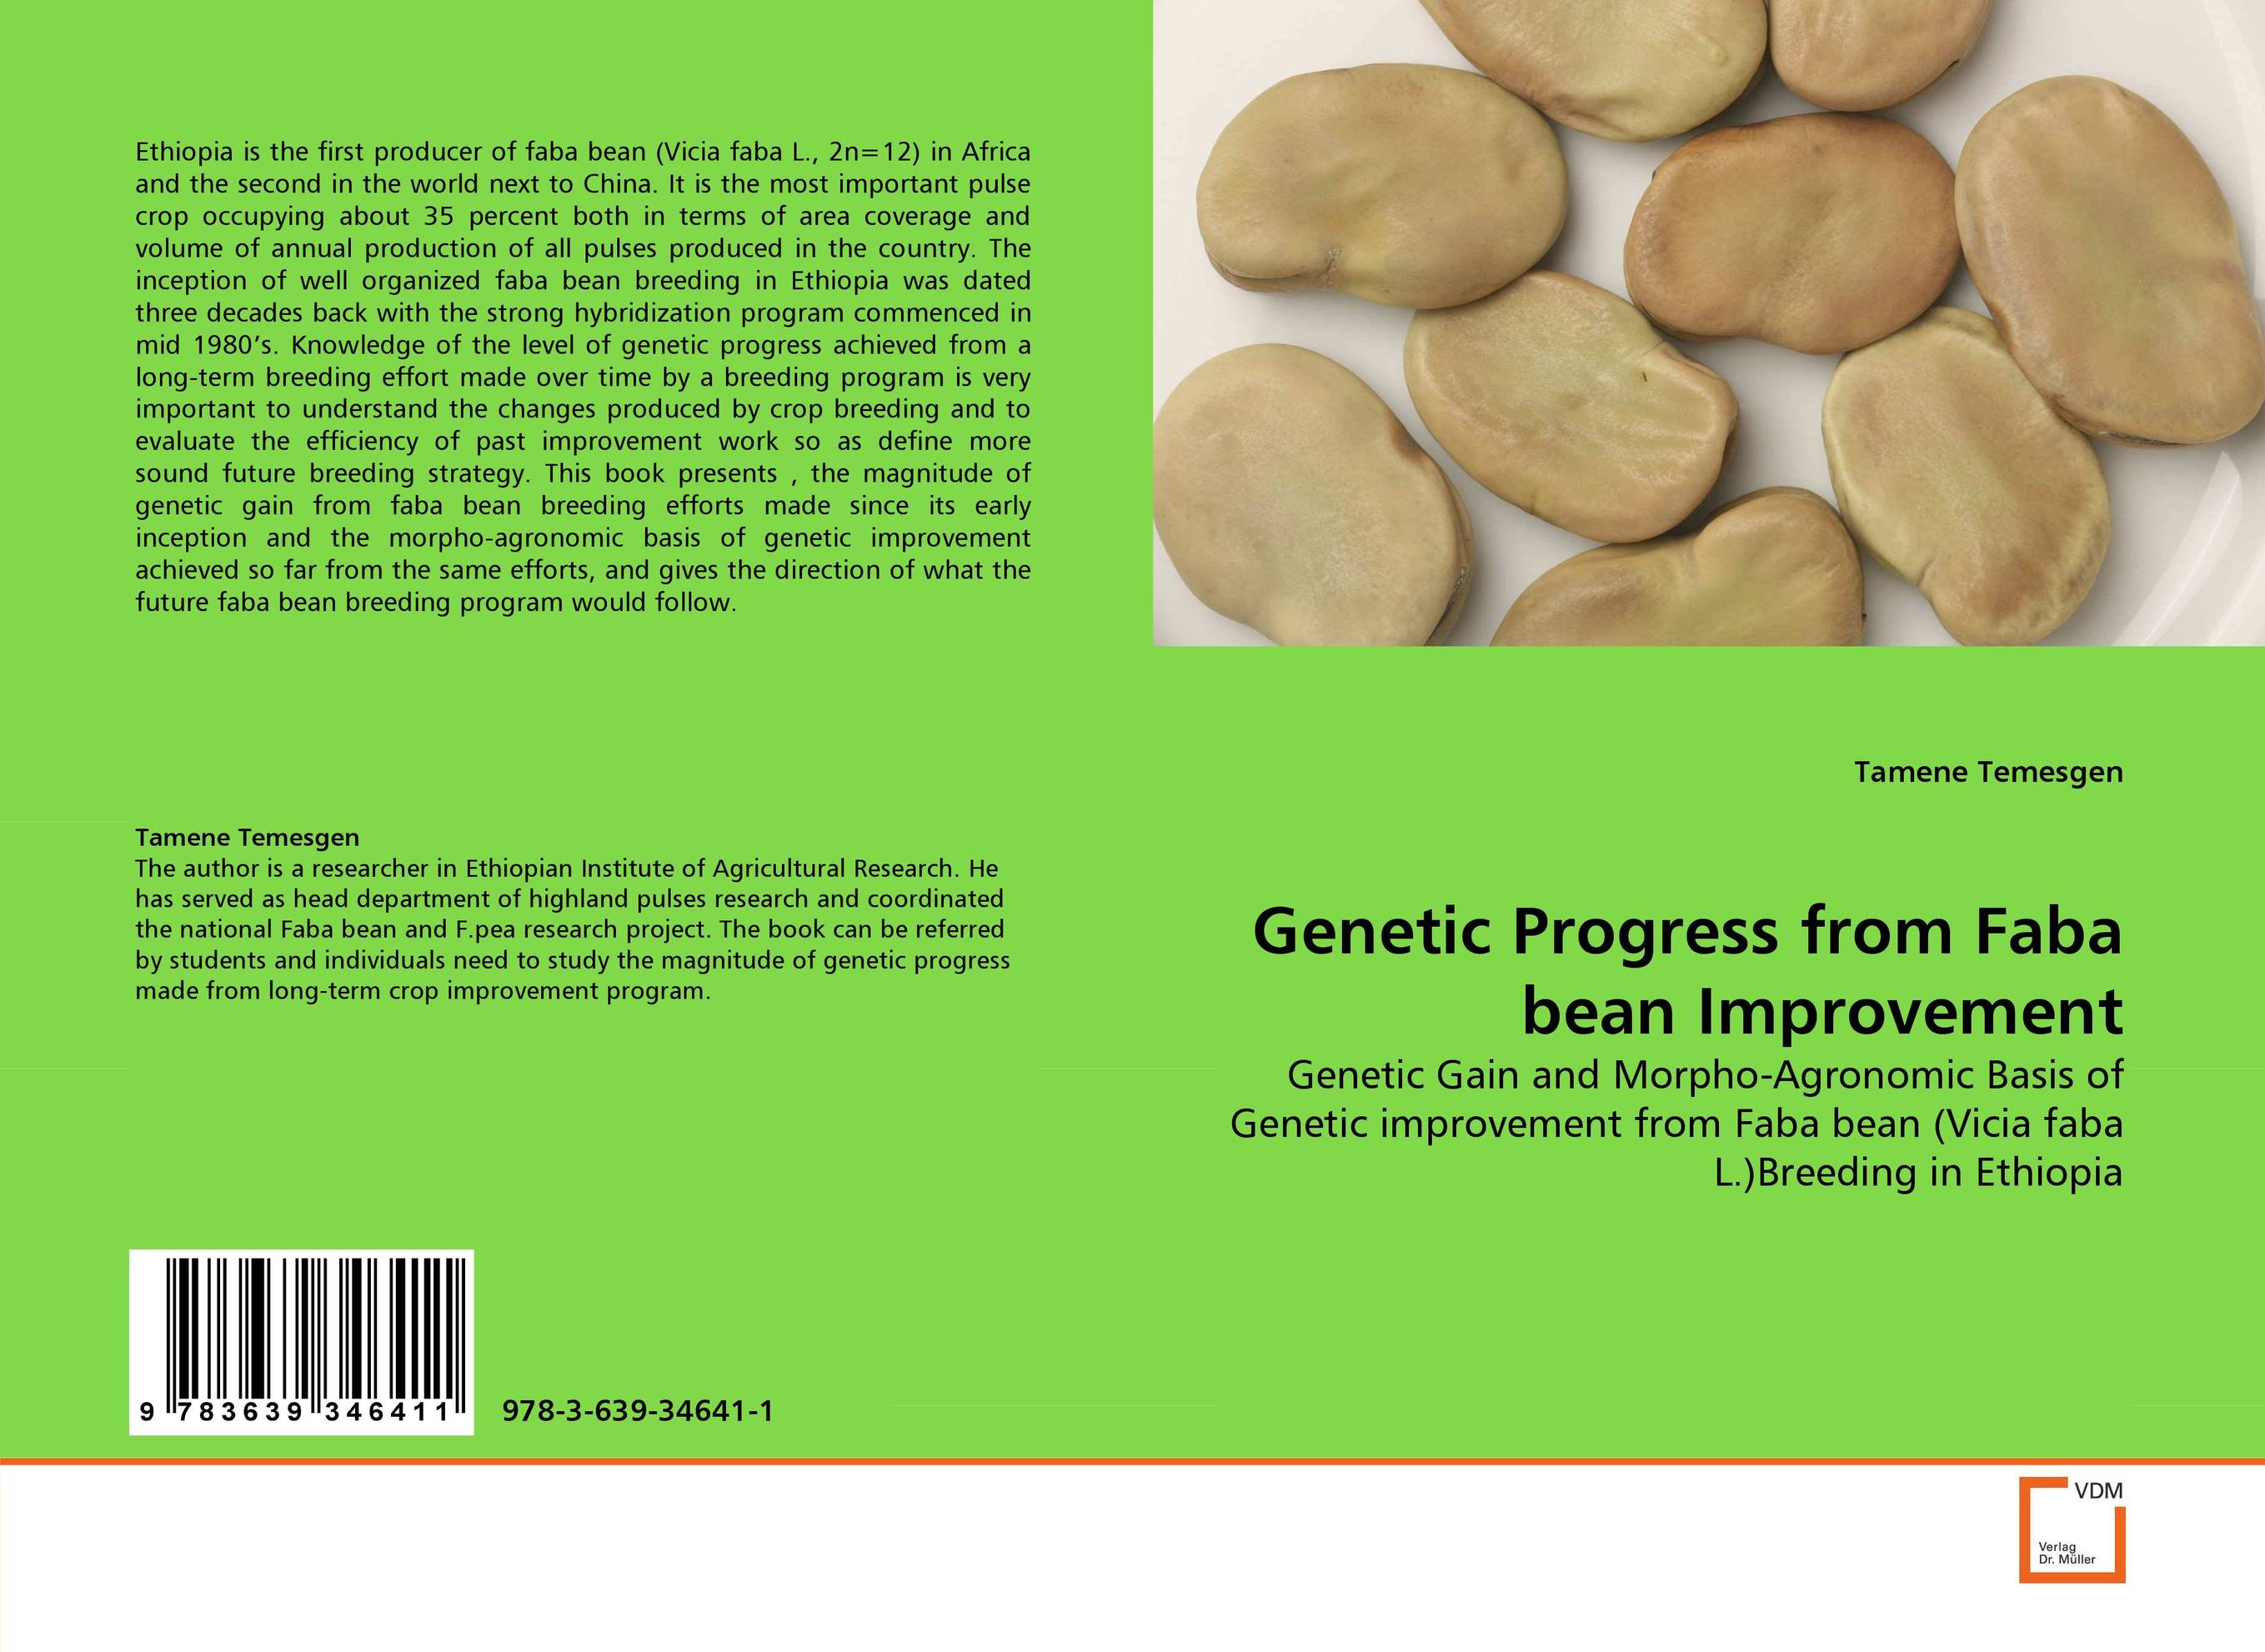 Genetic Progress from Faba bean Improvement bottlegourd breeding